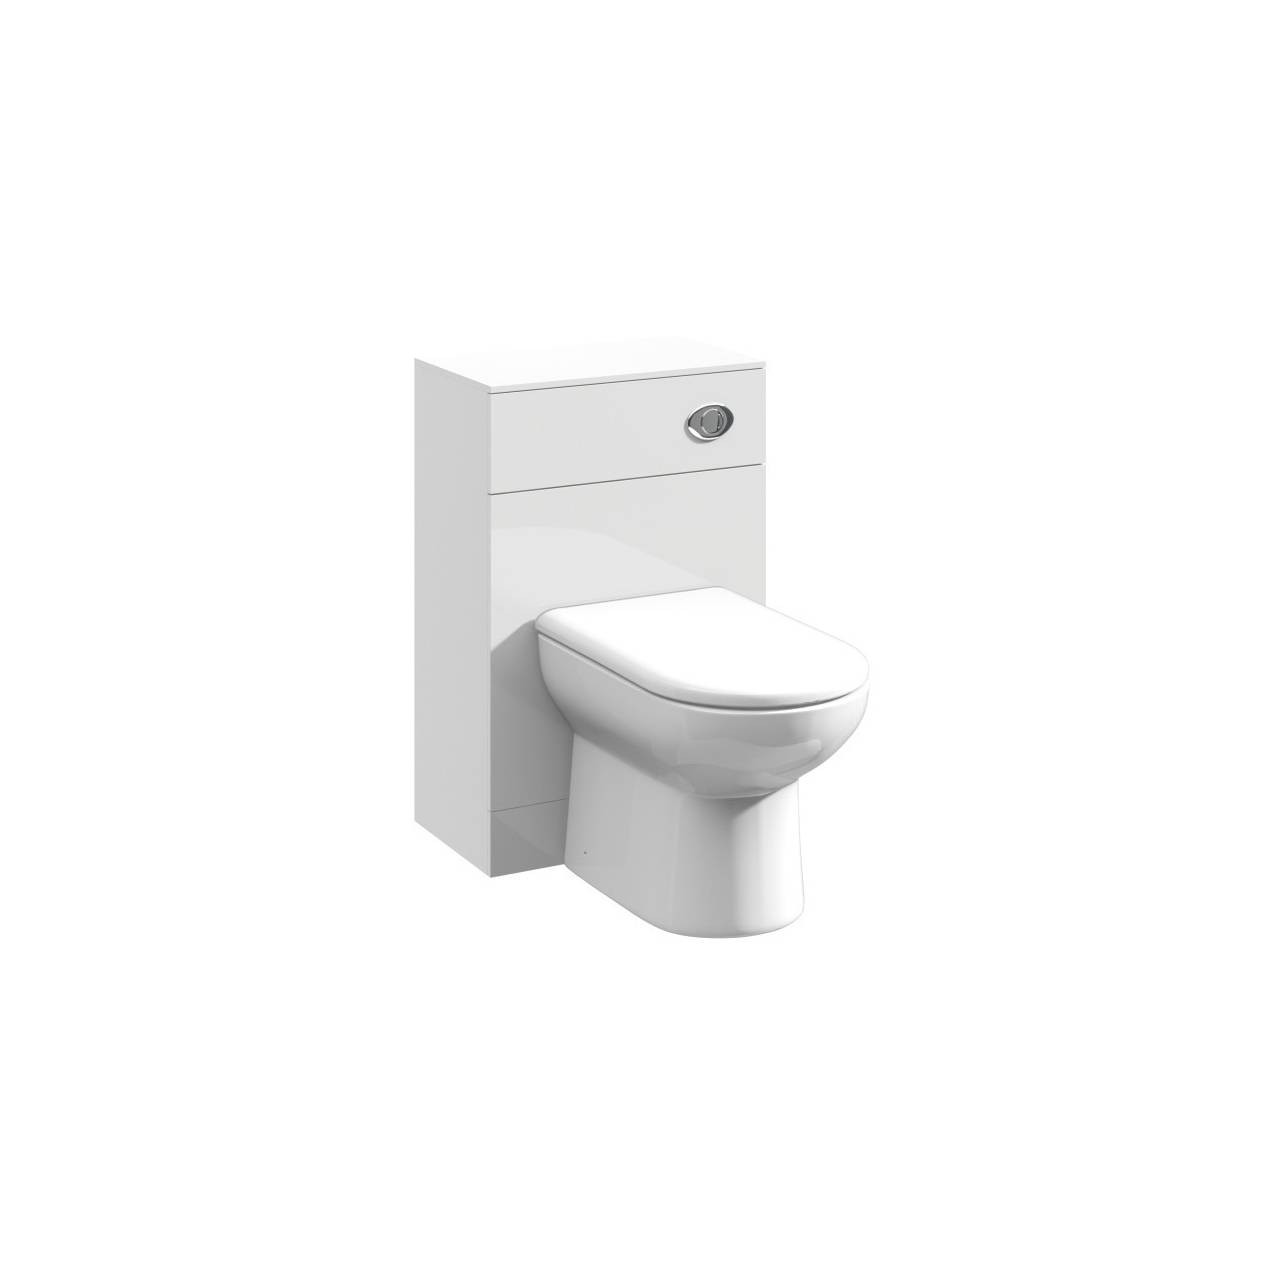 Premier Mayford Gloss White 500mm x 300mm Toilet Unit - PRC141